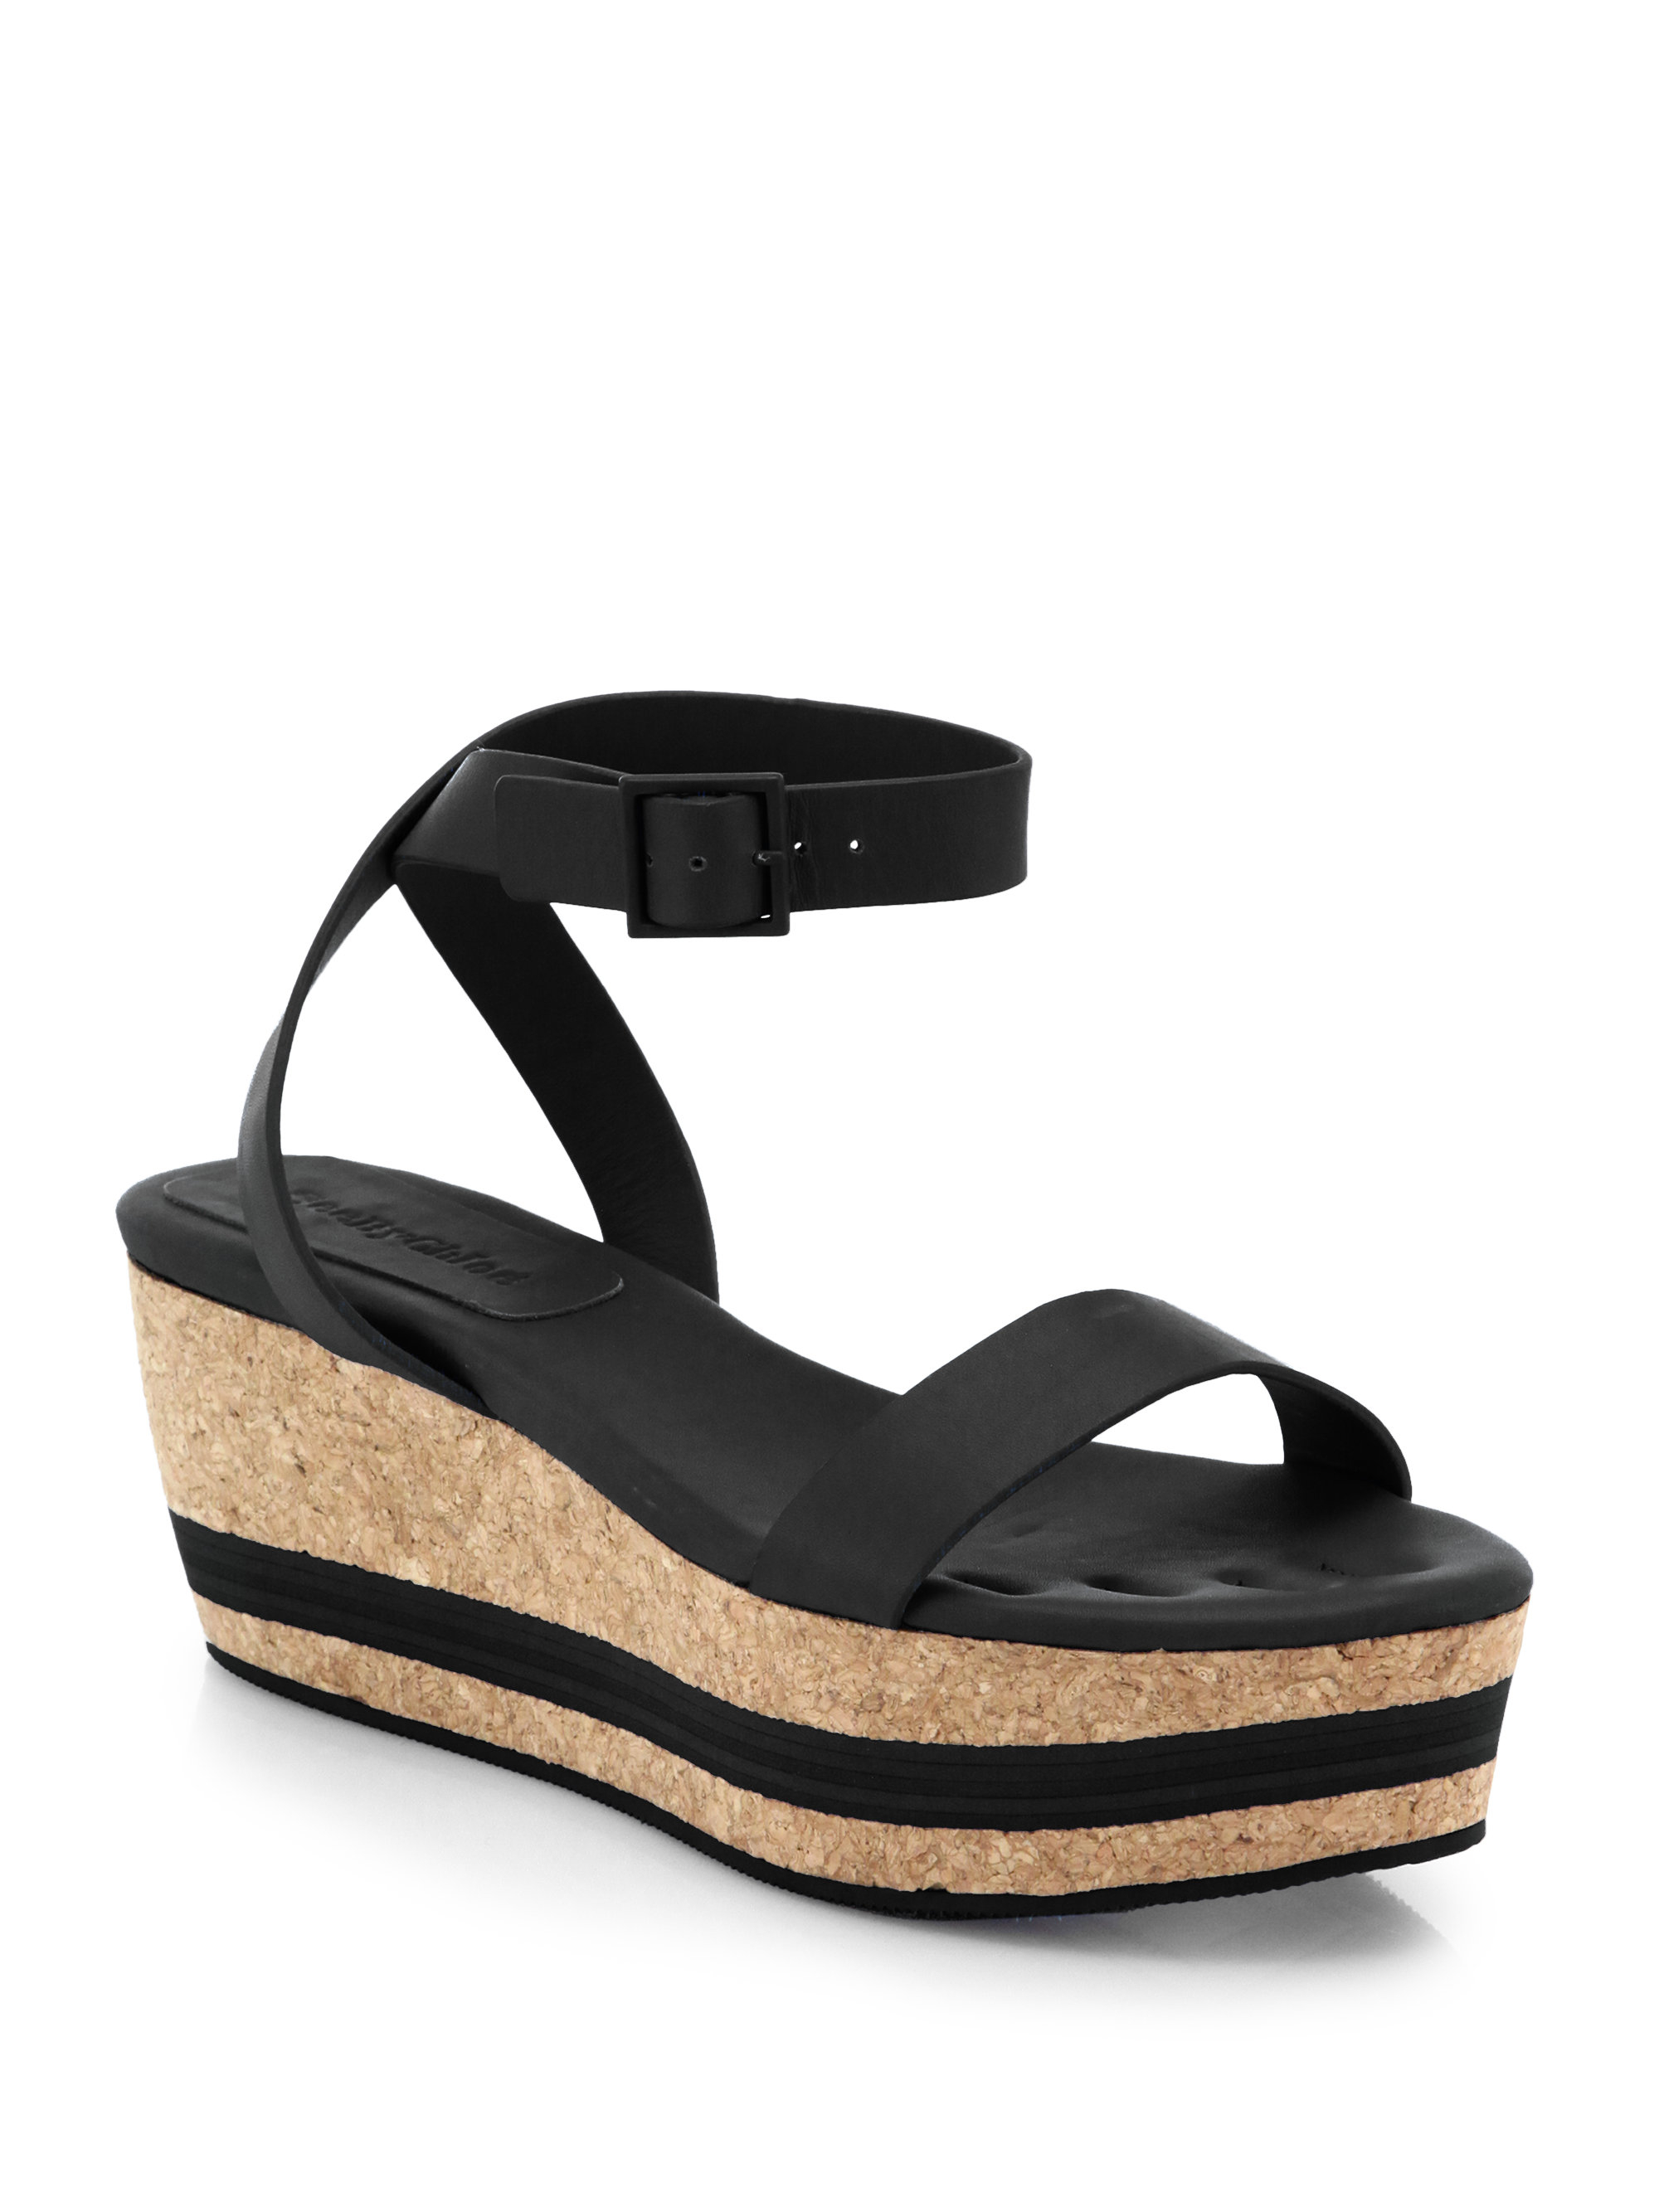 8c8e74d07fed0e see-by-chloe-black -leather-cork-platform-sandals-product-1-26116090-0-810130358-normal.jpeg